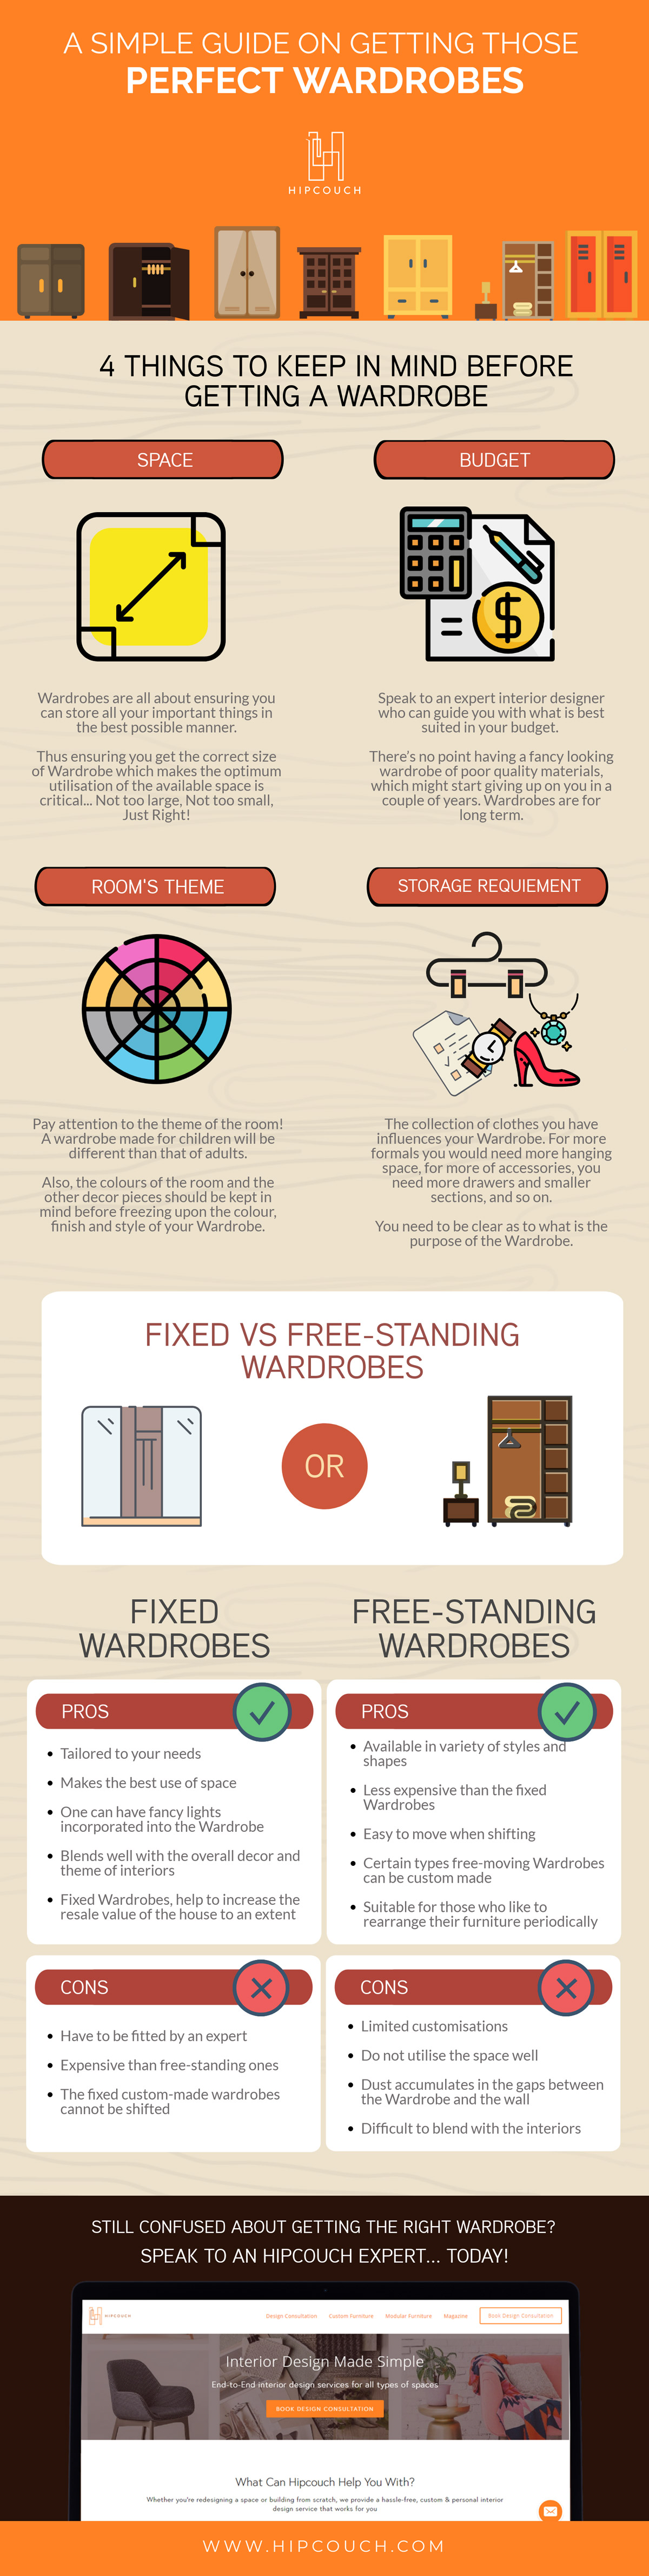 Quick-and-Simple-Guides-on-Choosing-the-Right-Wardrode.jpg